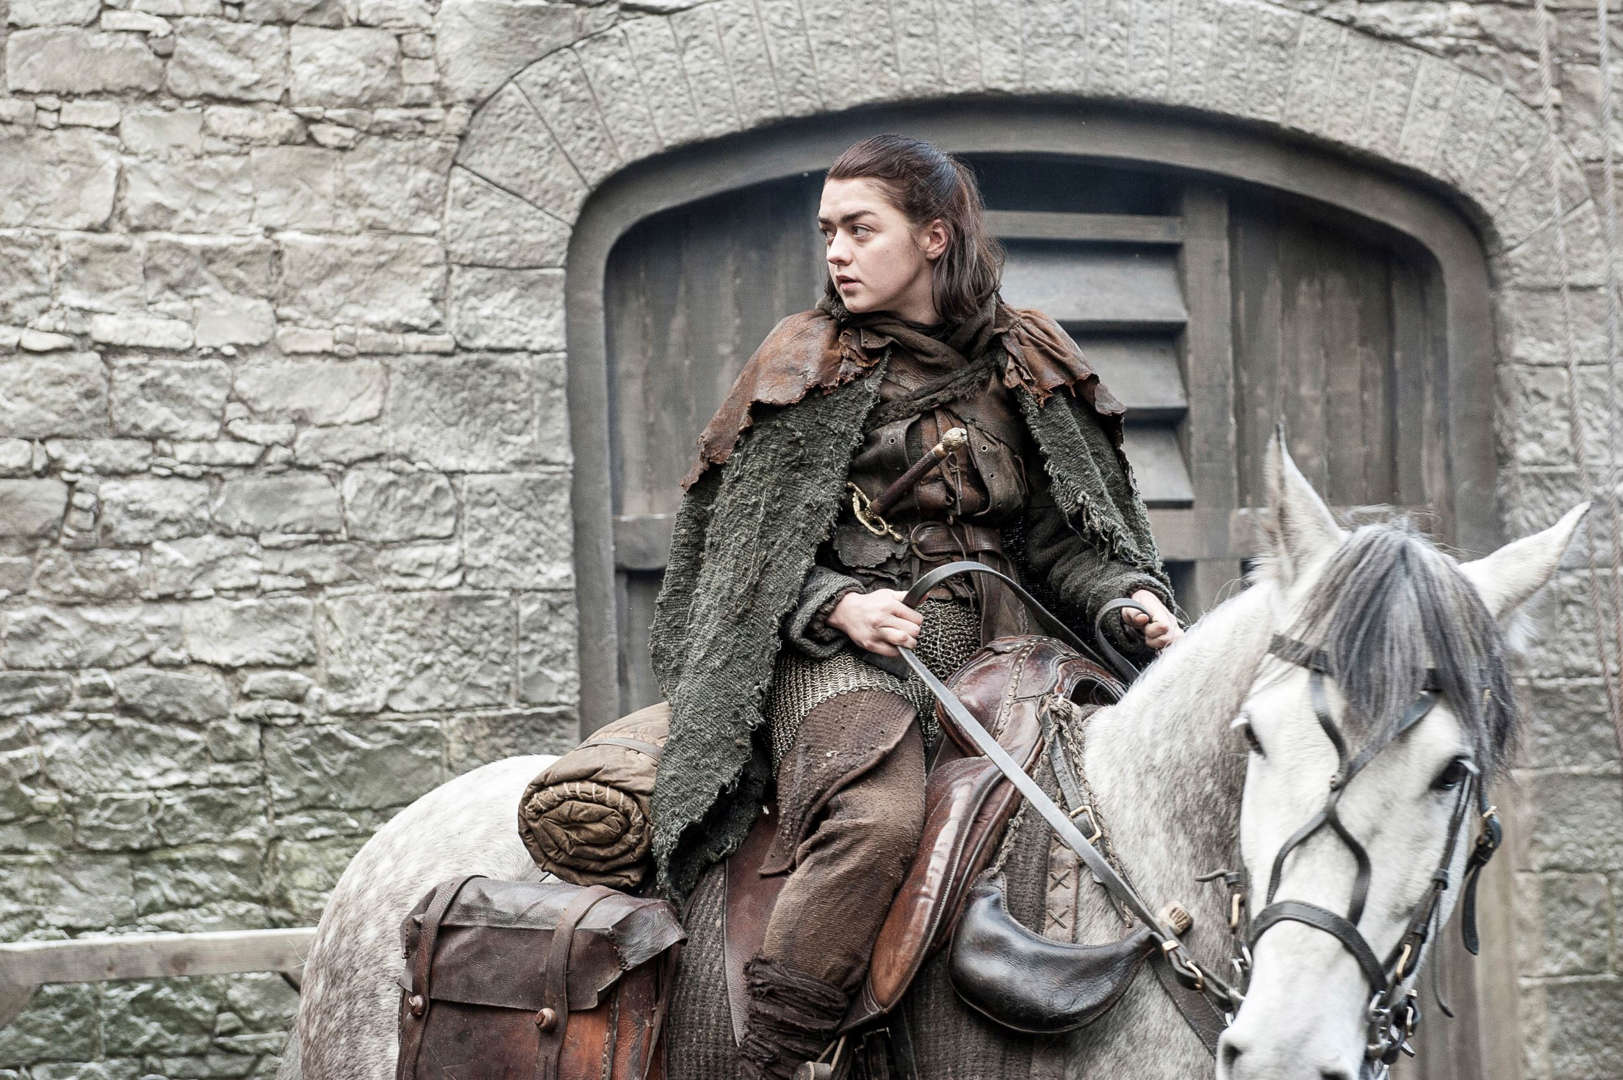 Coolest women in sci-fi and fantasy TV shows